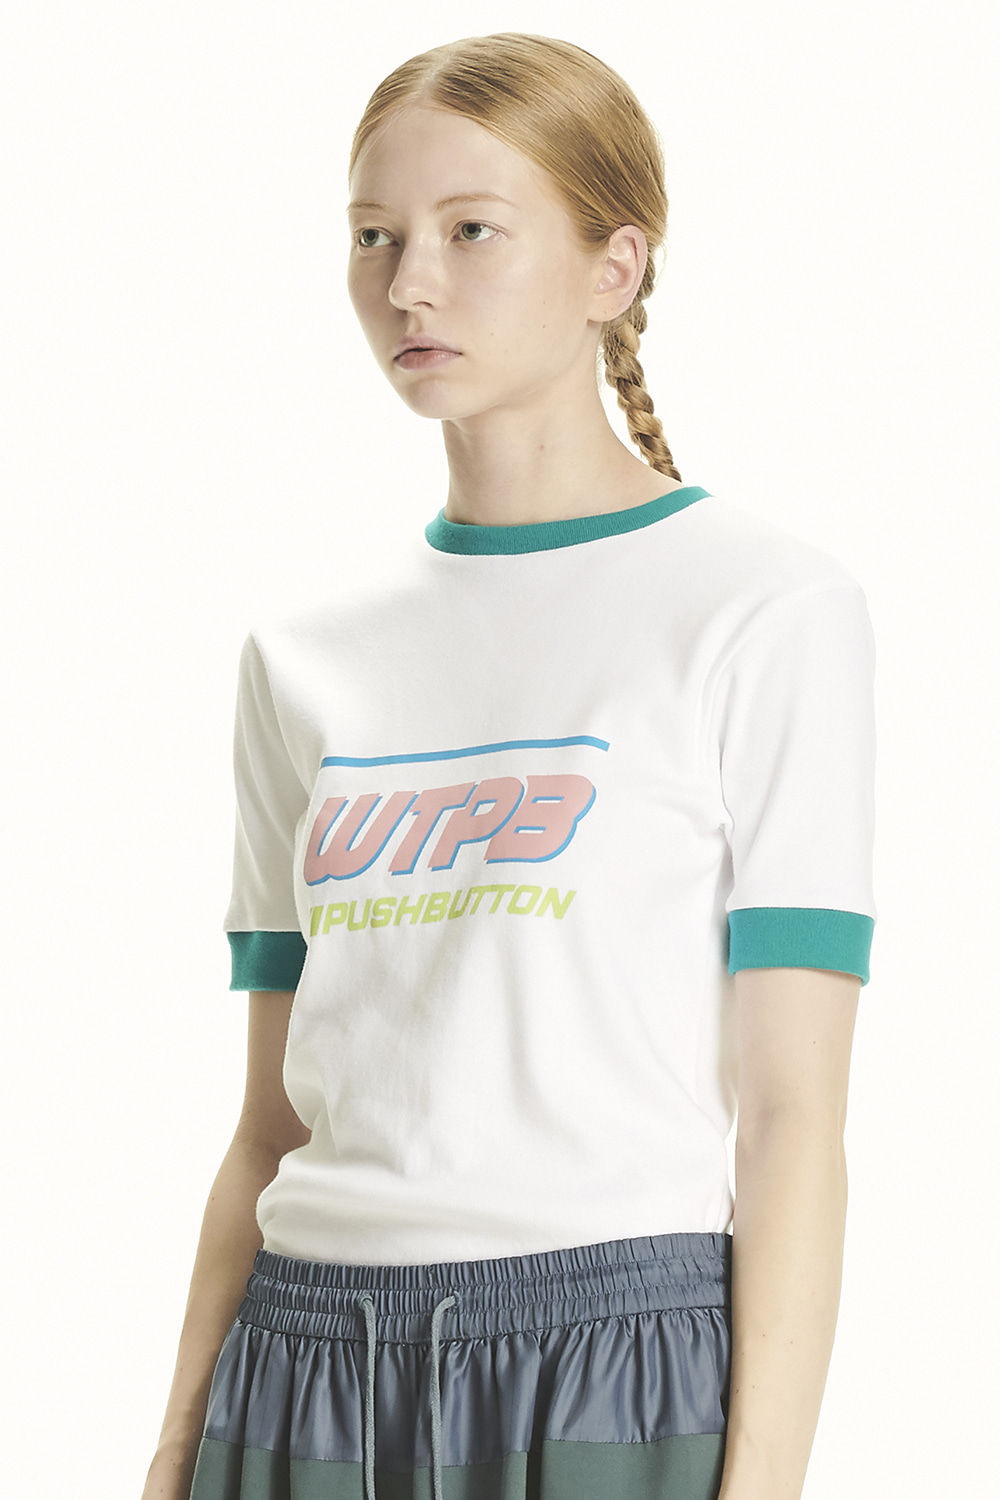 PS21 WTPB GREEN RIBS T-SHIRT